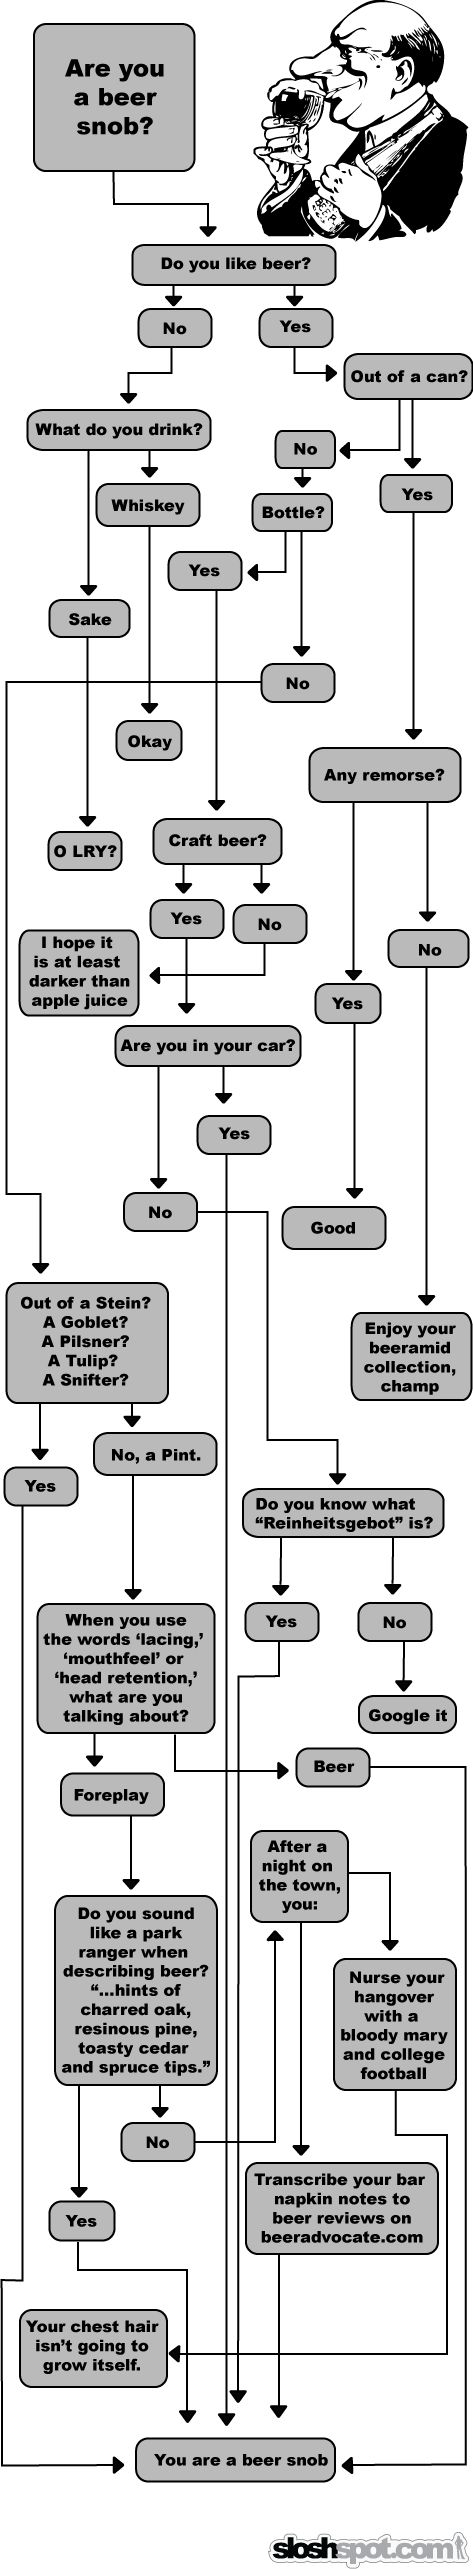 Are-You-A-Beer-Snob.png (473×2569)